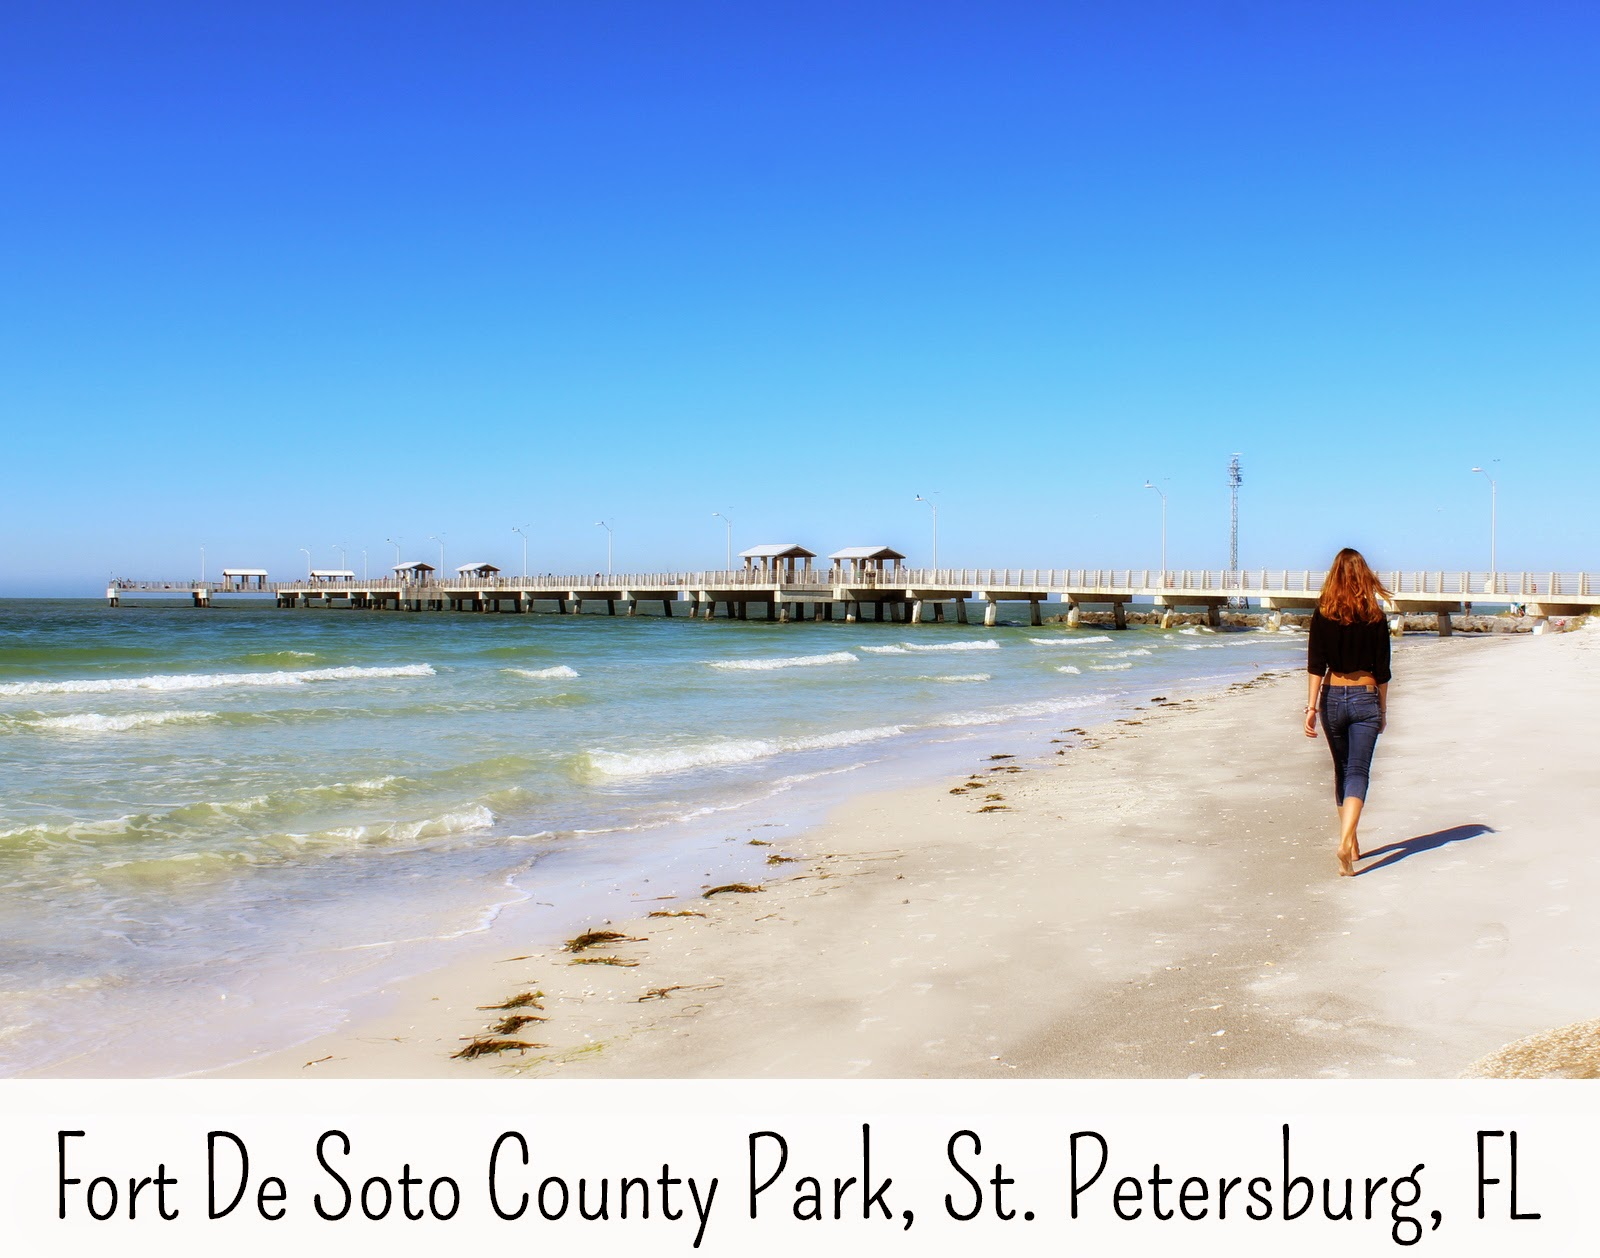 Fort De Soto County Park, St. Petersburg, FL beach and campground